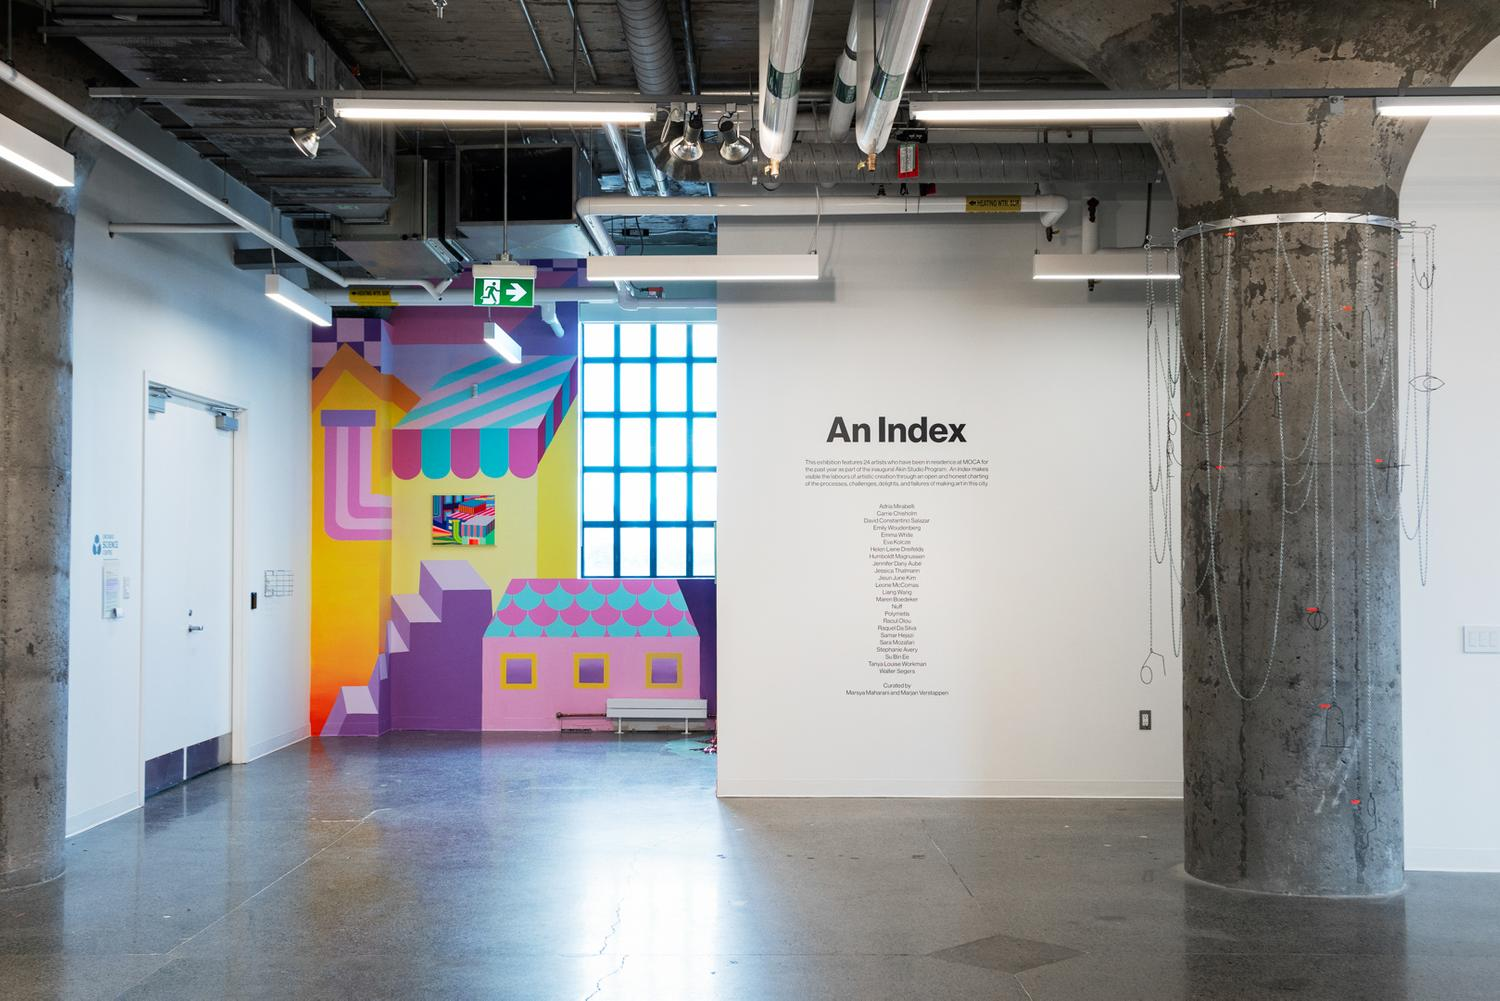 A photo of the start of the exhibition. In the middle of the image, a black vinyl text on a white wall lists the exhibition title and statement, as well as credits the artists and curators. On the left side of the image, a mural by Kim of a colourful dream world that animates a nook in the gallery with a large paned widow. On the right side of the image, a grey structural column is draped with an aluminum chainlinnk site-specific scupture.